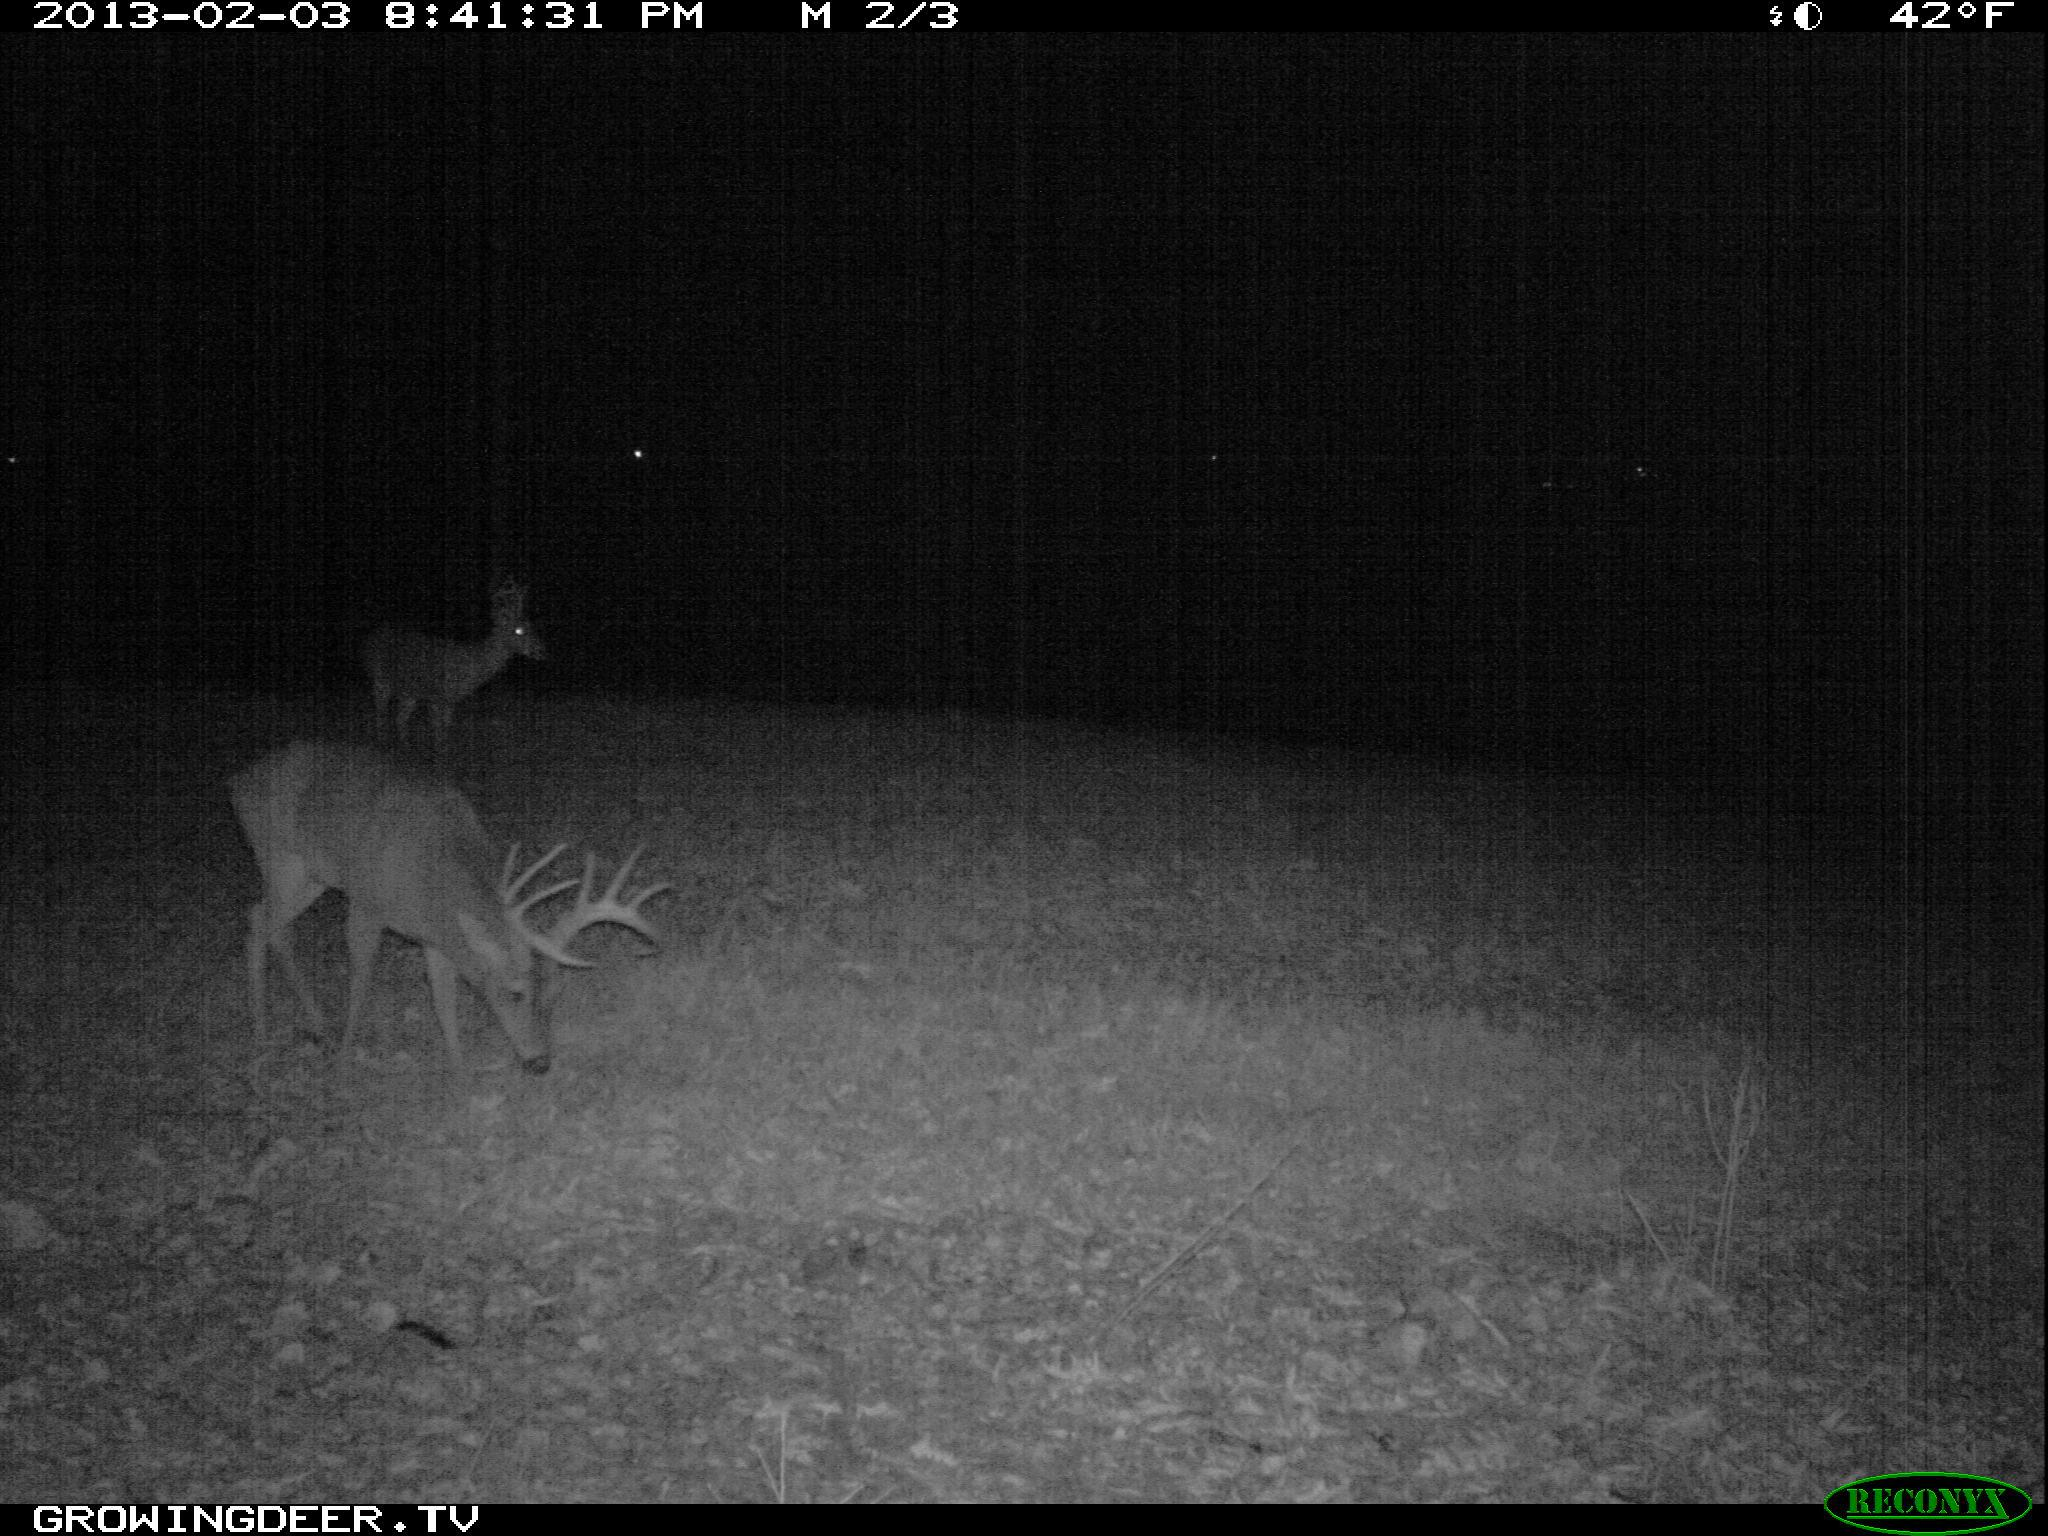 Trail Camera Photo of A Large  Antlered Whitetail  Buck We Call Split Brow